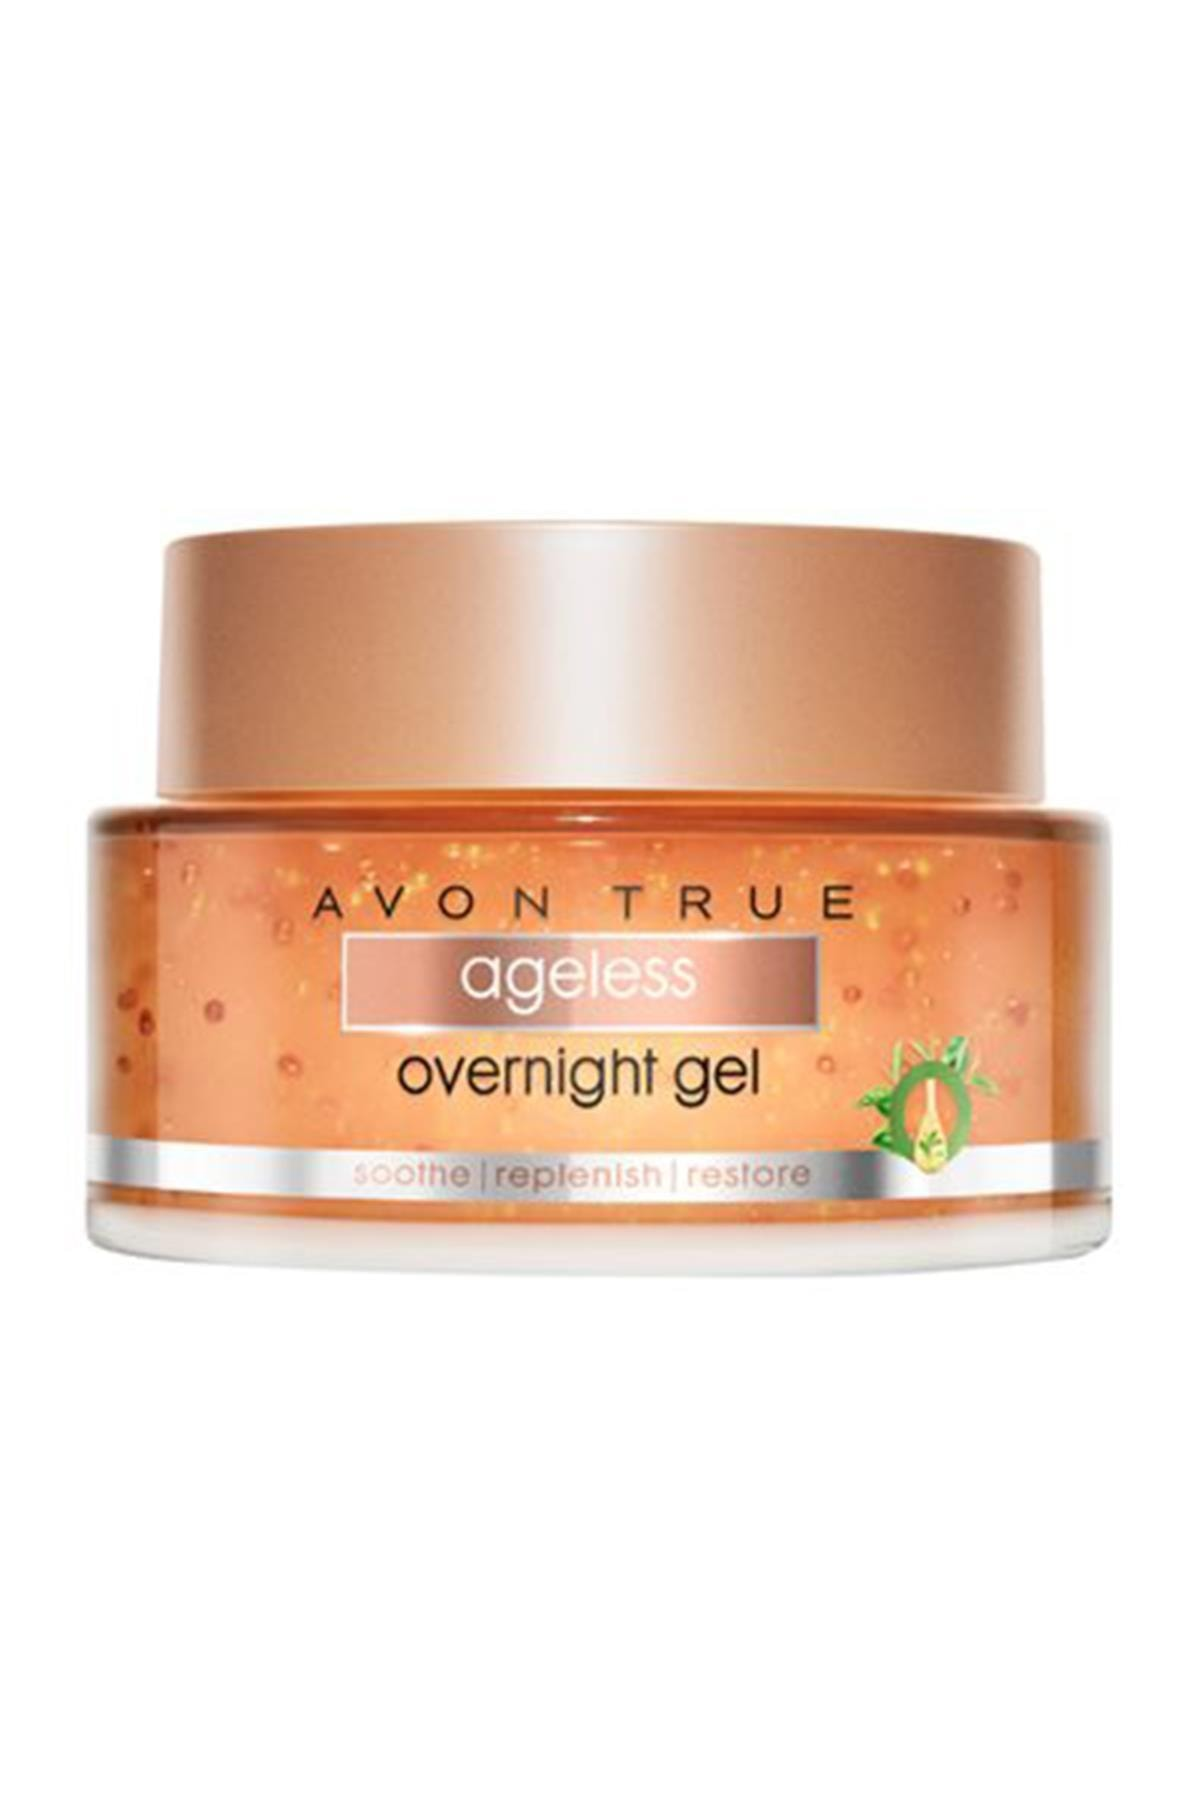 AVON True Ageless Jel Gece Kremi 50 ml 5059018016423